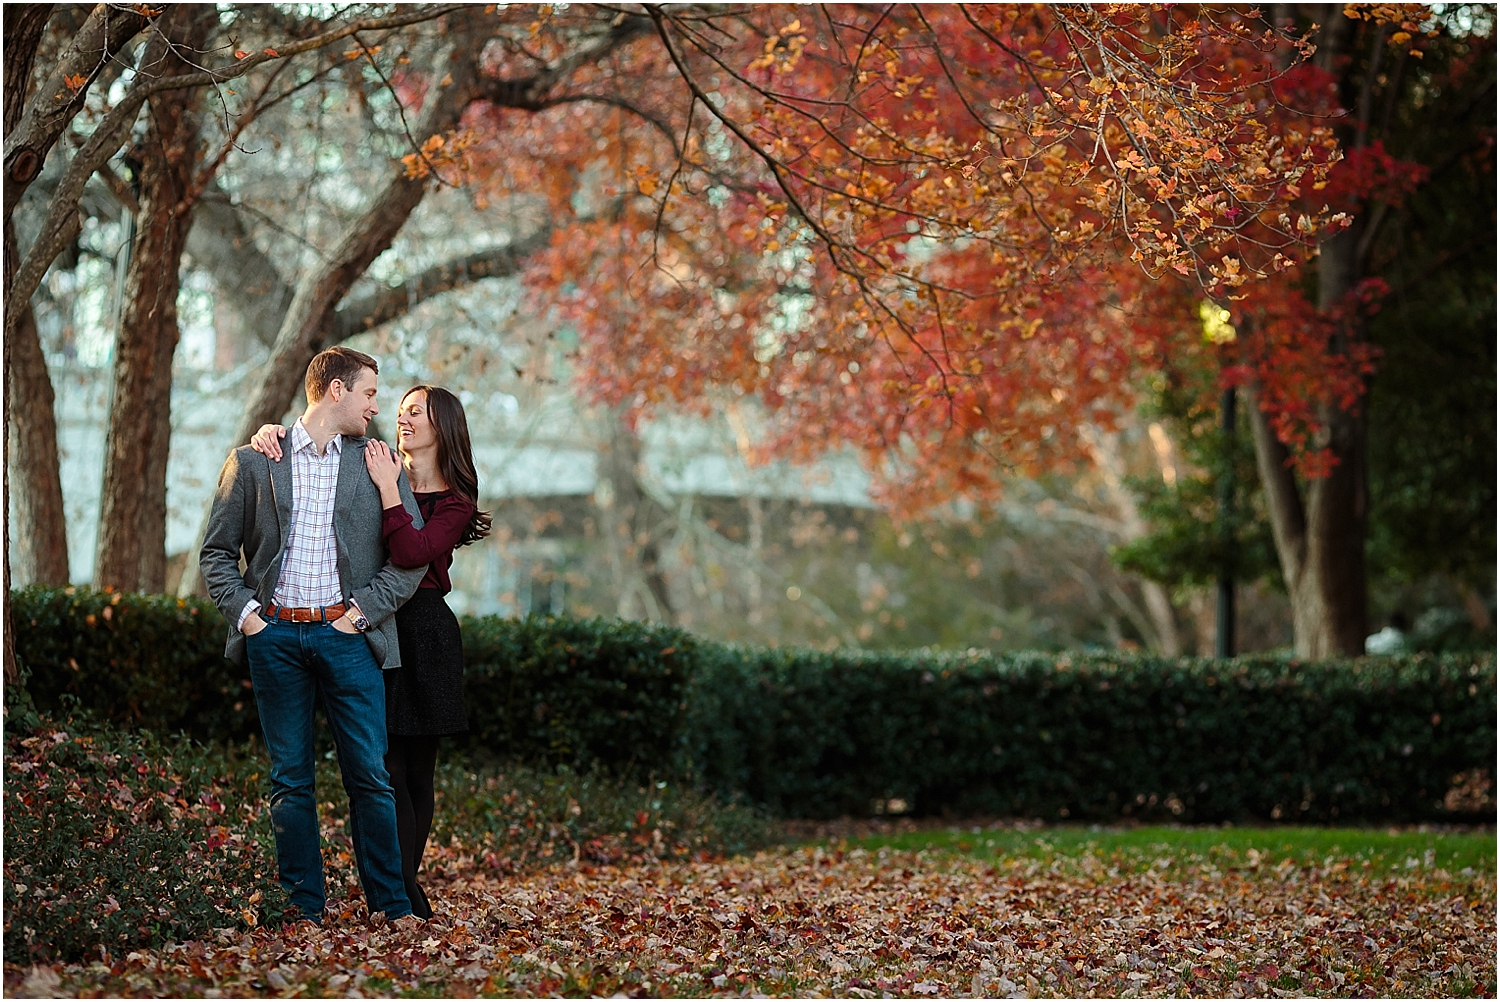 141128--8994Downtown-Greenville-engagement_blog.jpg